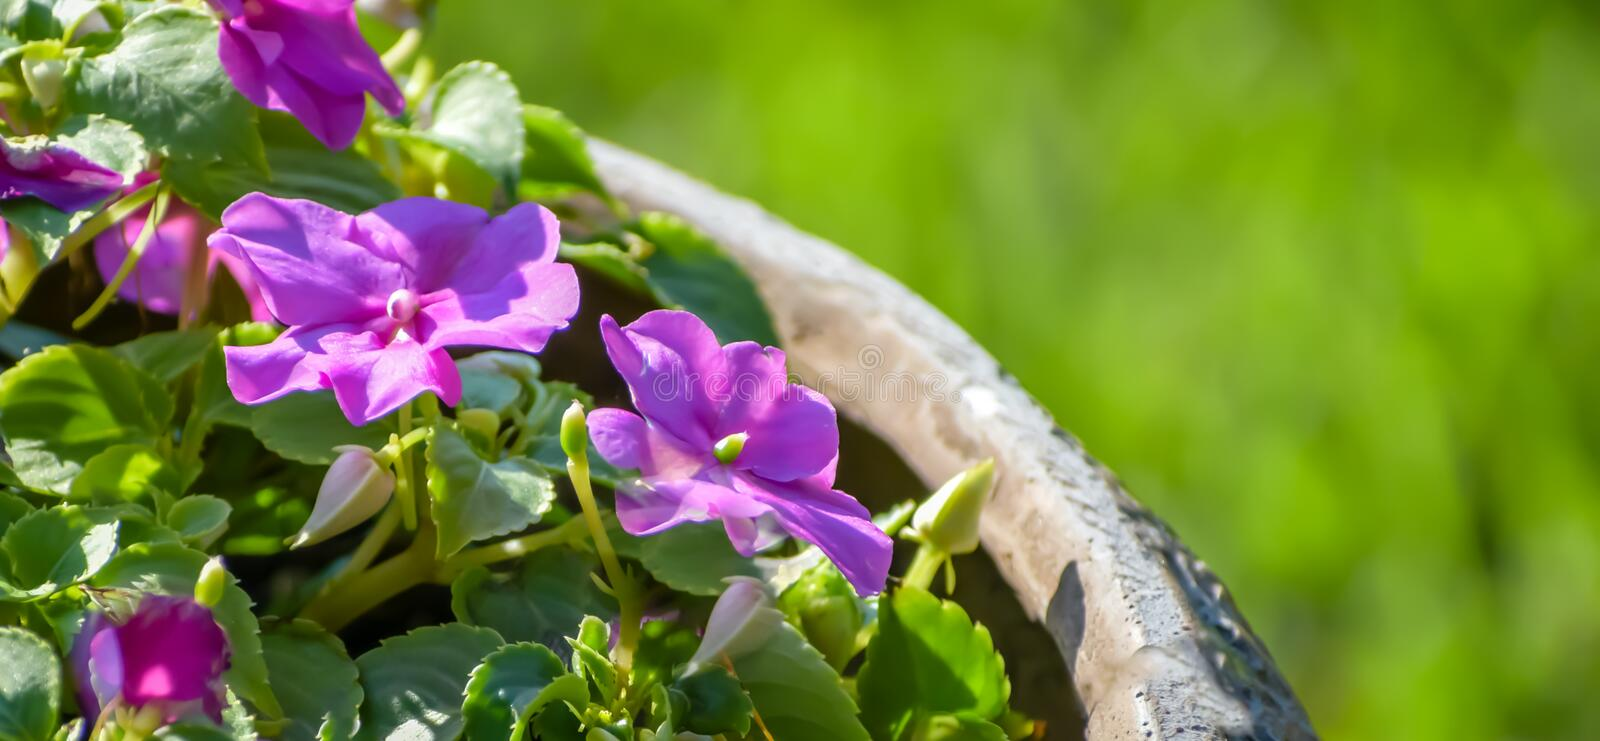 CLOSEUP CORNER BEAUTIFUL PURPLE FLOWERS IN CEMENT POT. Closeup of purple flowers and green leaves in a cement pot with a blurred green background royalty free stock image